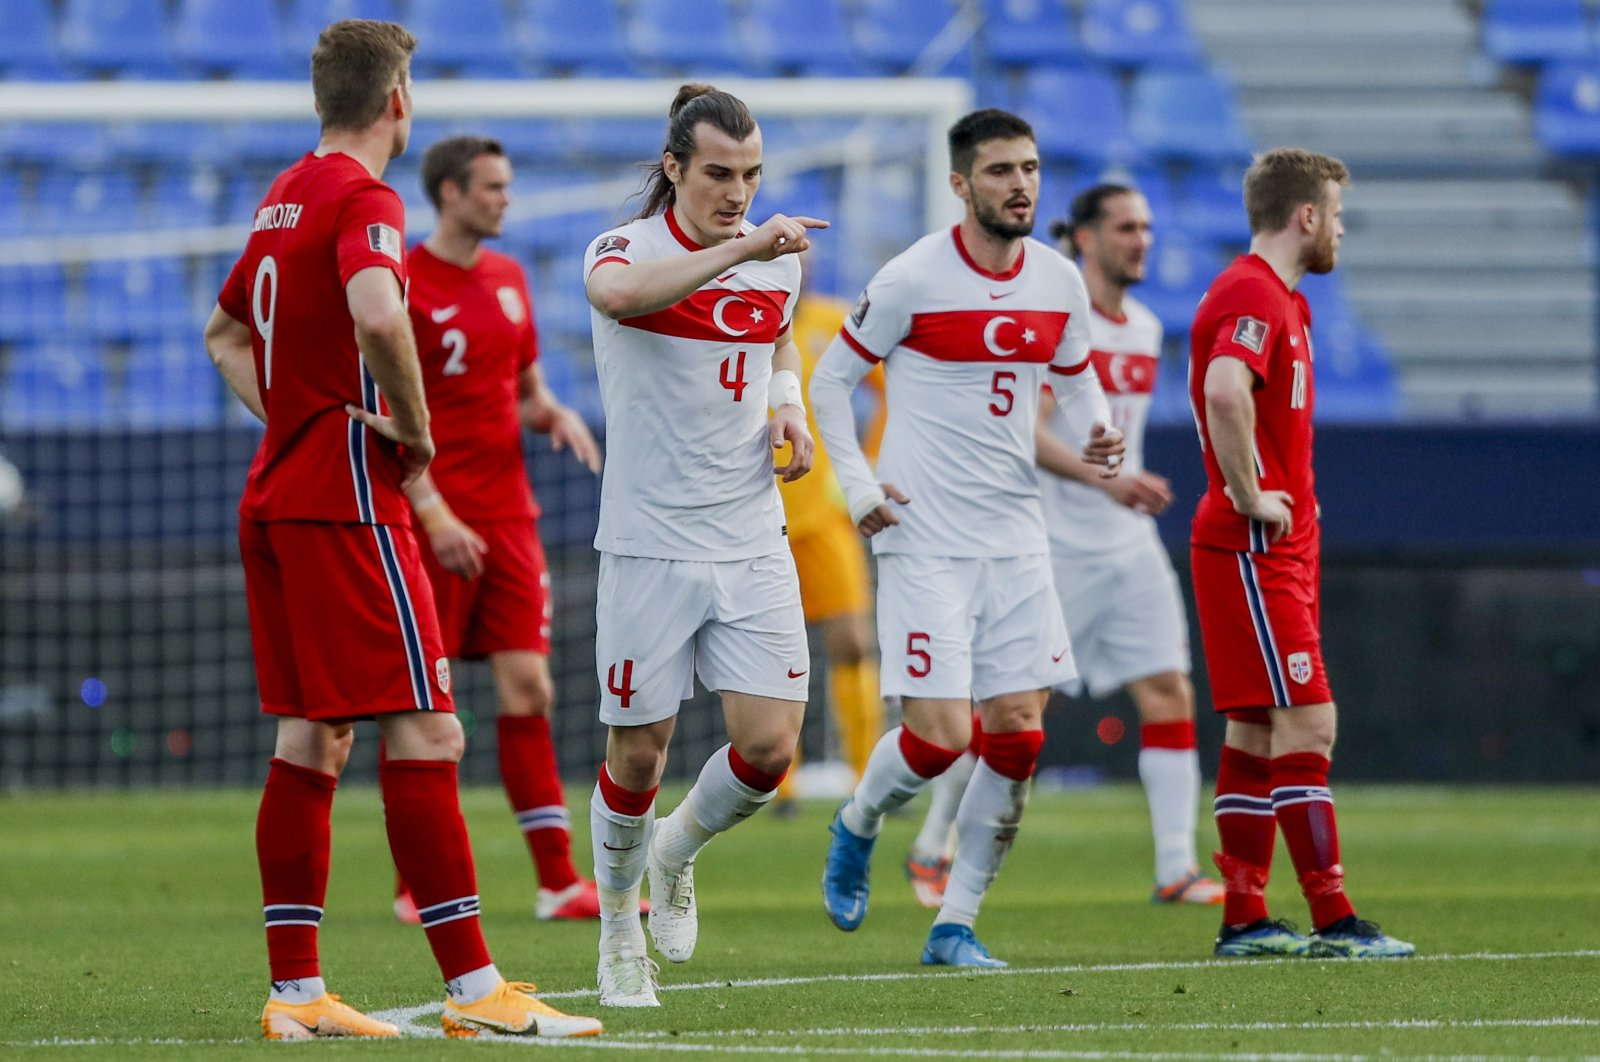 Turkish defender Çağlar Söyüncü (2nd R) celebrates after scoring his side's second goal in a World Cup 2022 Group G qualifier match against Norway at La Rosaleda stadium, Malaga, Spain, March 27, 2021. (AP Photo)